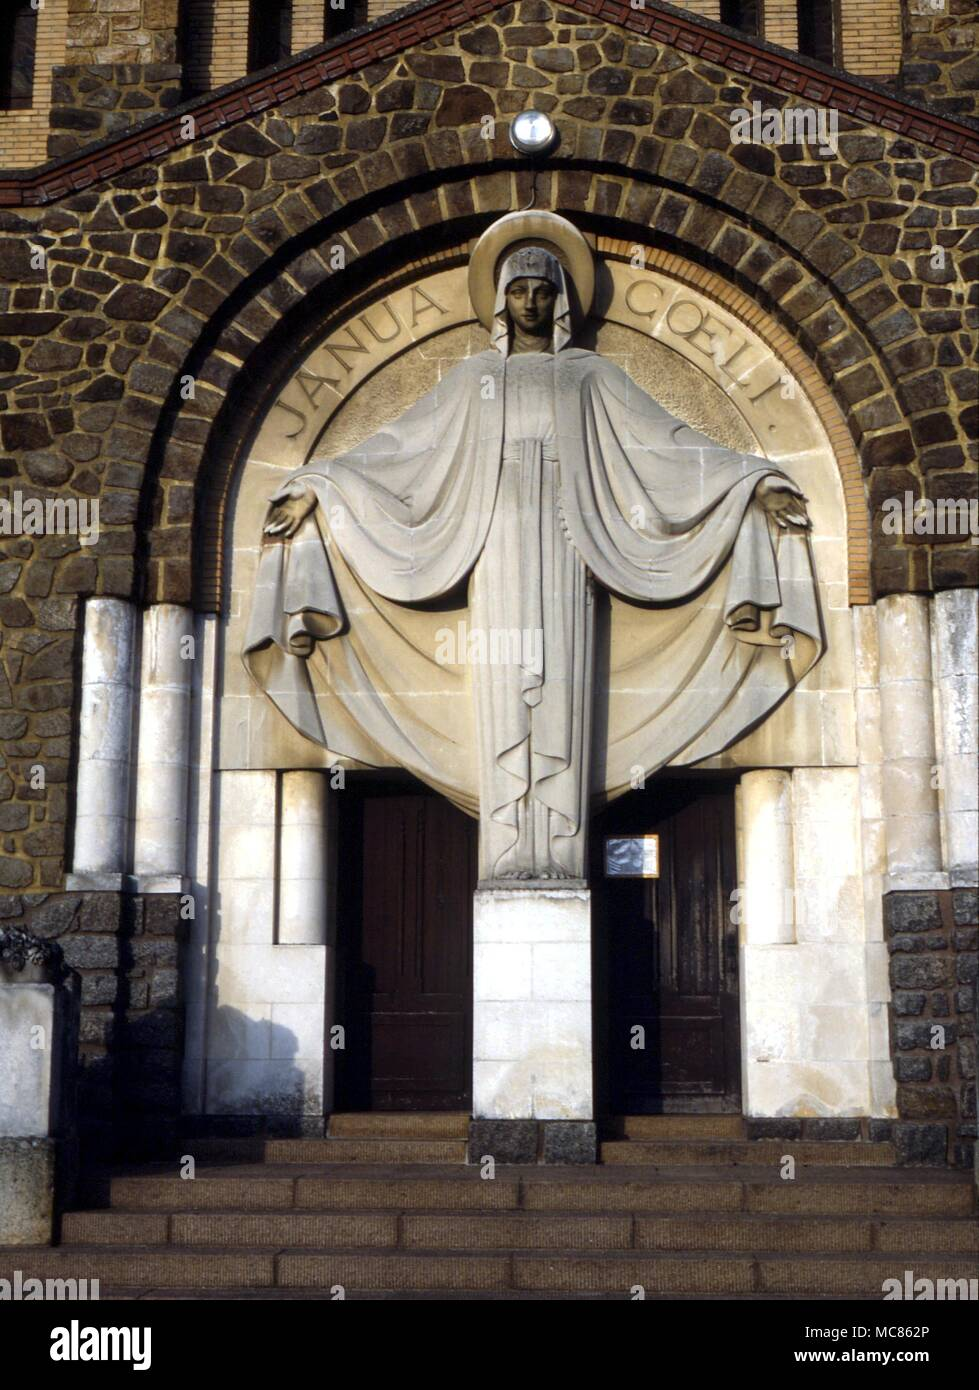 Christian Symbols The Image Of The Virgin Mary Over The Entrance To